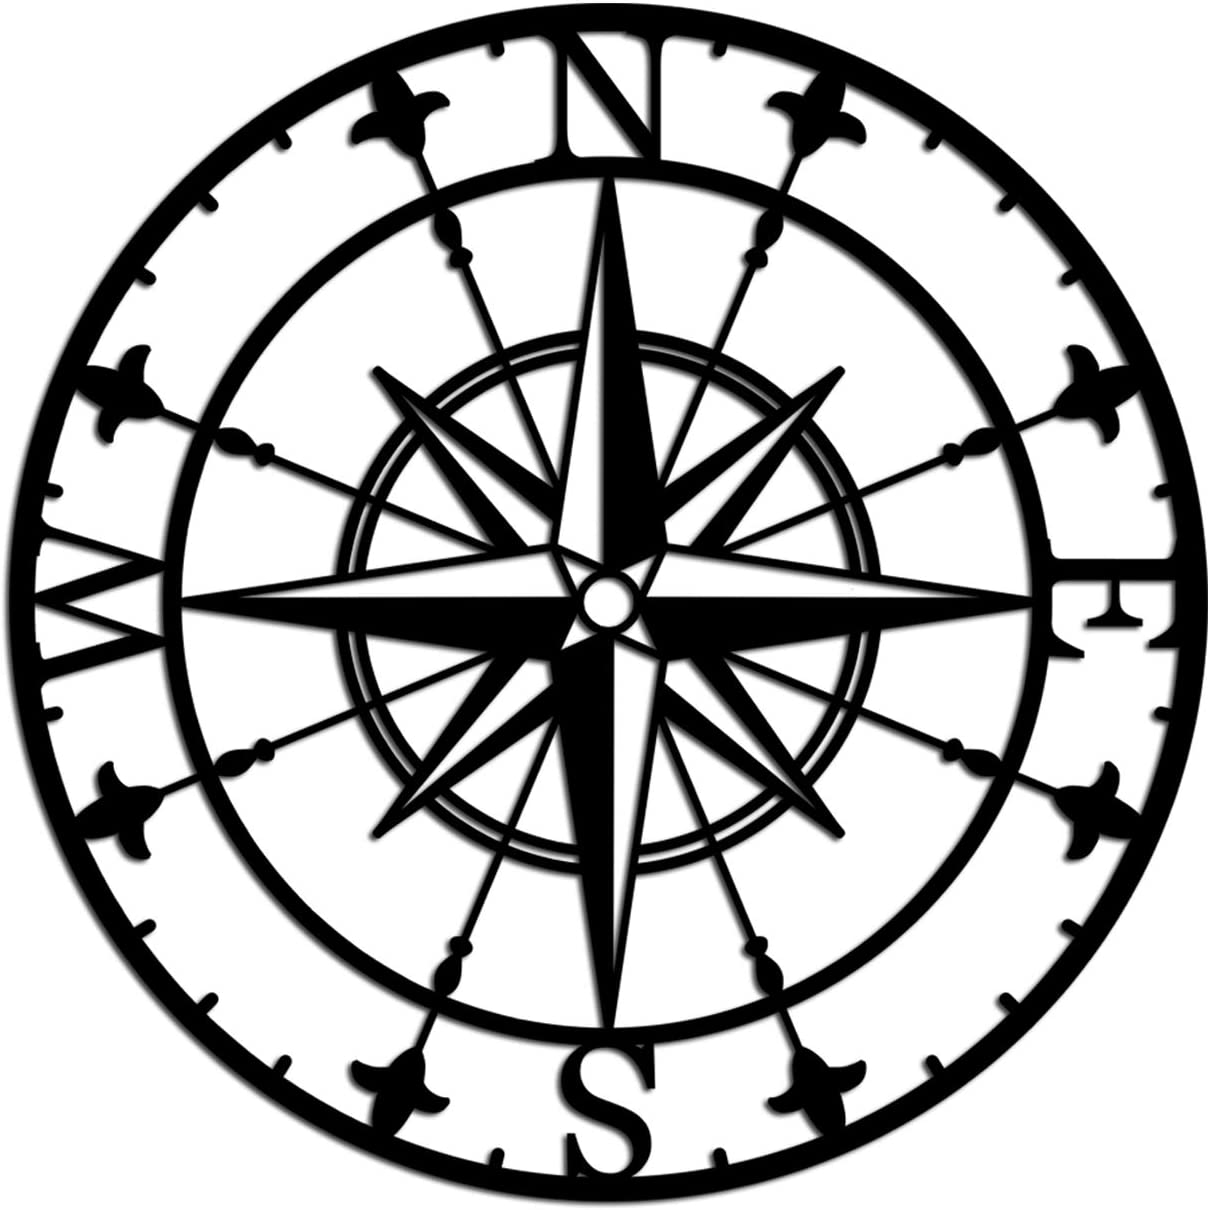 Nautical Metal Wall Decor Compass Wall Hanging Art for Nature Home Indoor Outdoor Decorations 24